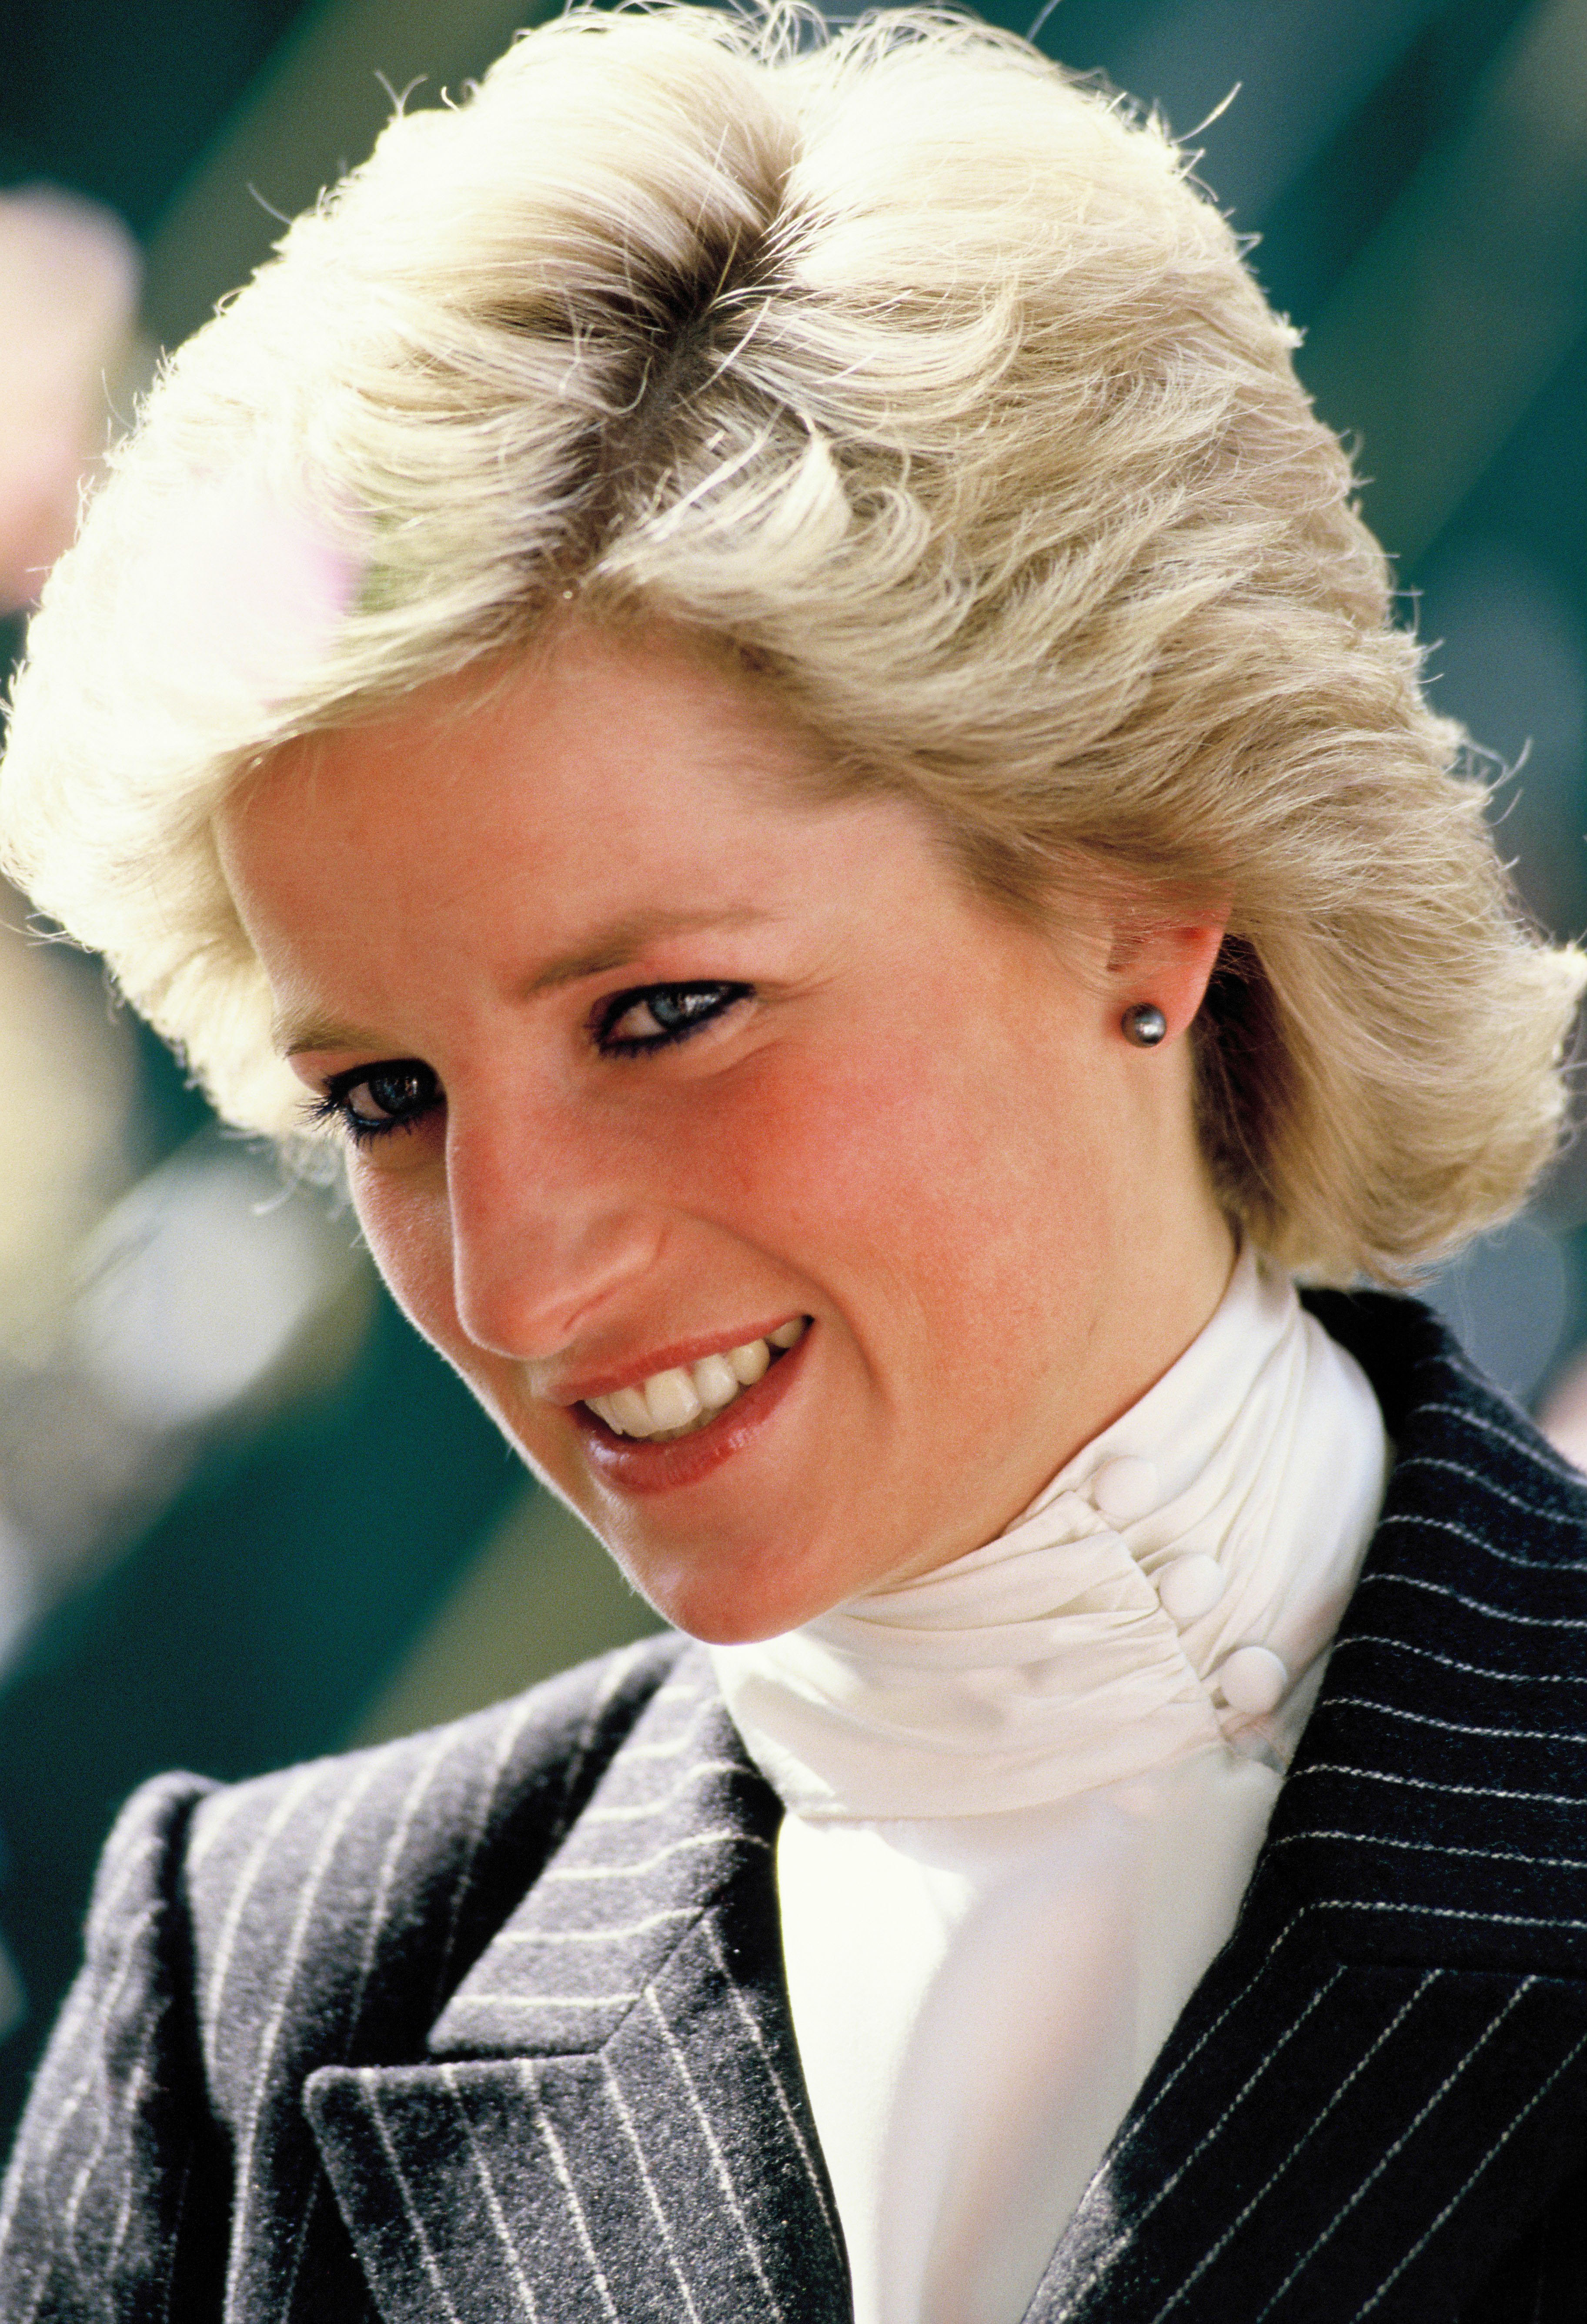 25 beauty secrets from princess diana - the royal's best makeup